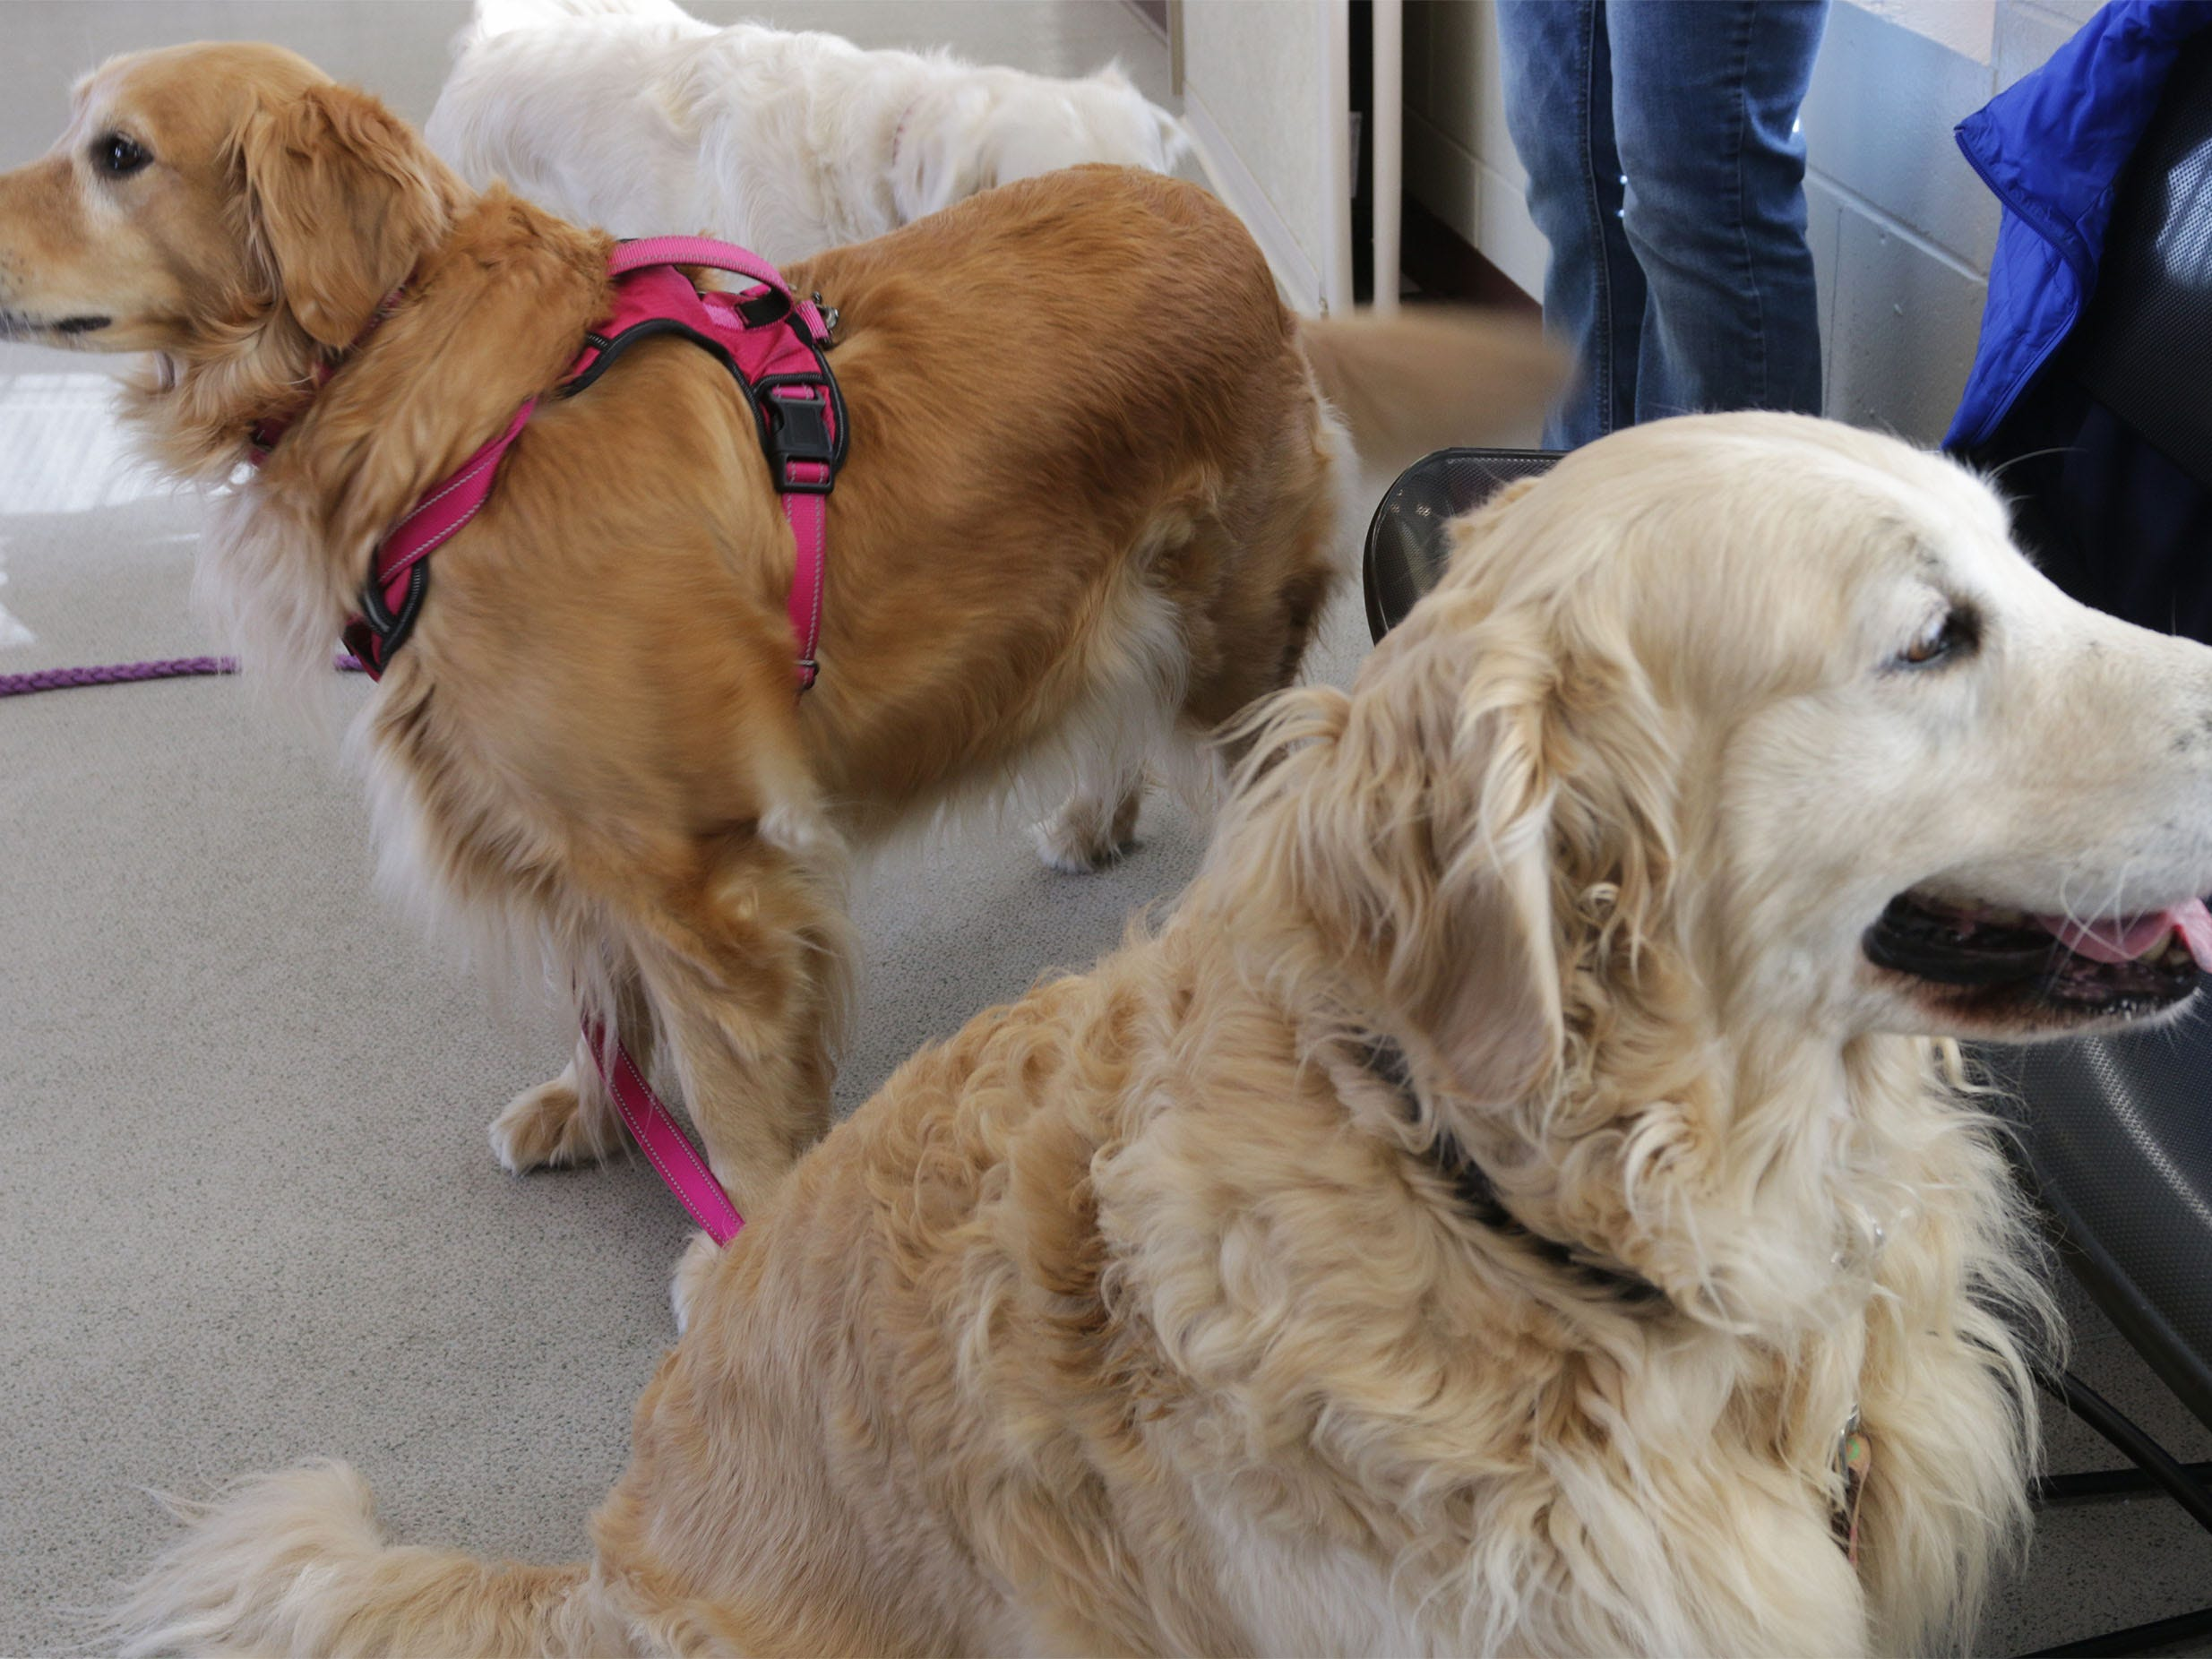 A pair of golden retrievers look about before the press conference at the Wisconsin Humane Society Ozaukee Campus, Thursday, March 14, 2109, in Saukville, Wis. The dogs, who will all eventually be adopted out, were part of the 36 live dogs that were seized in 2017 from Kinship Companions, a kennel that has been since shut down.